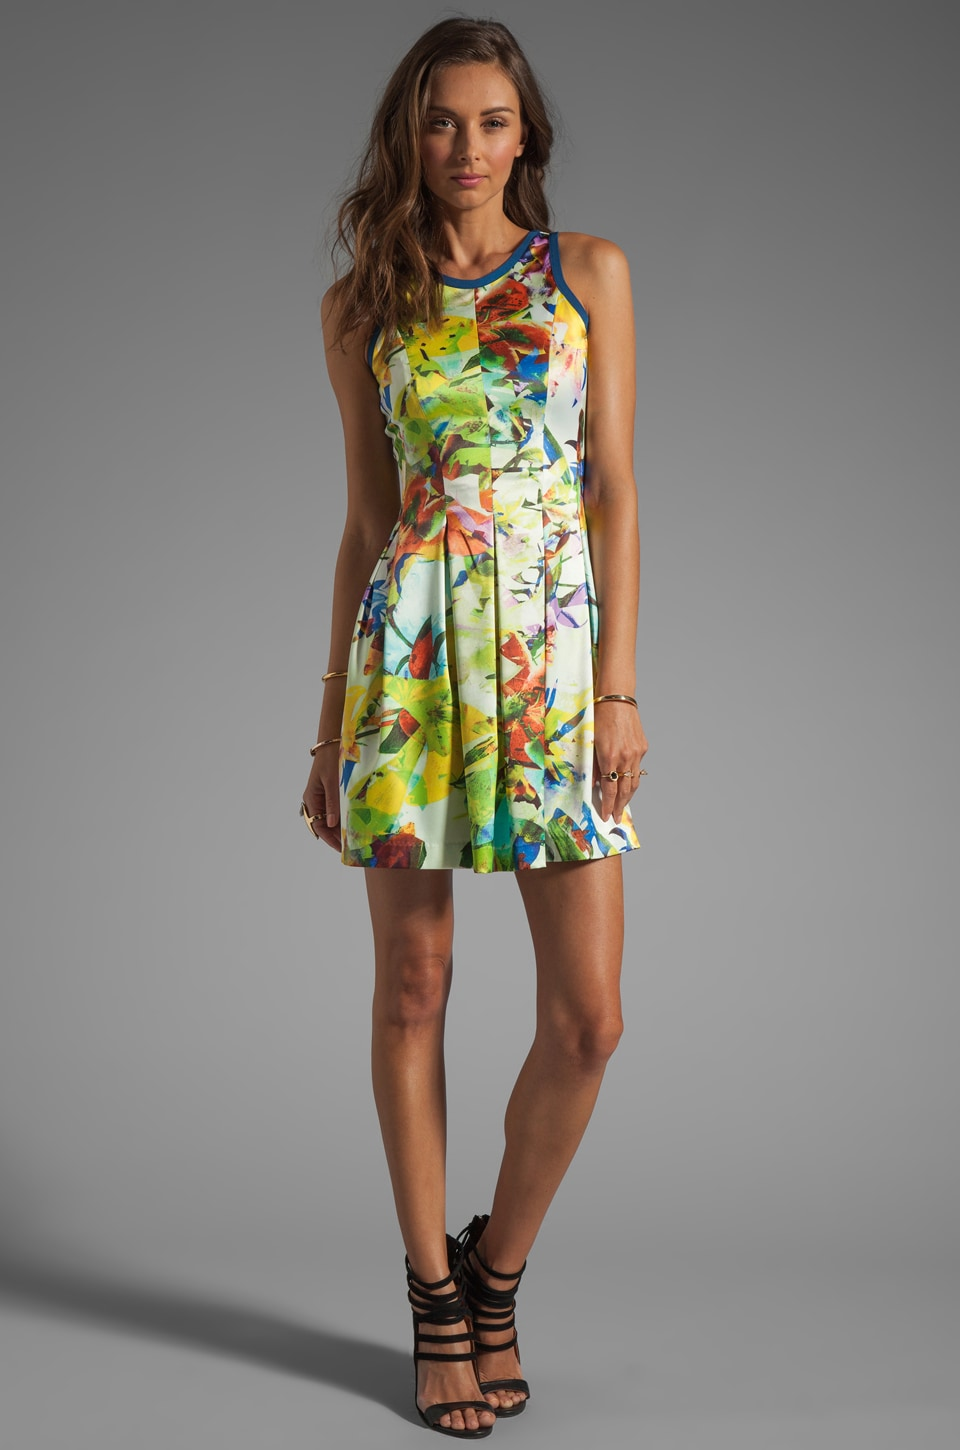 Parker Rio Dress in Tropic